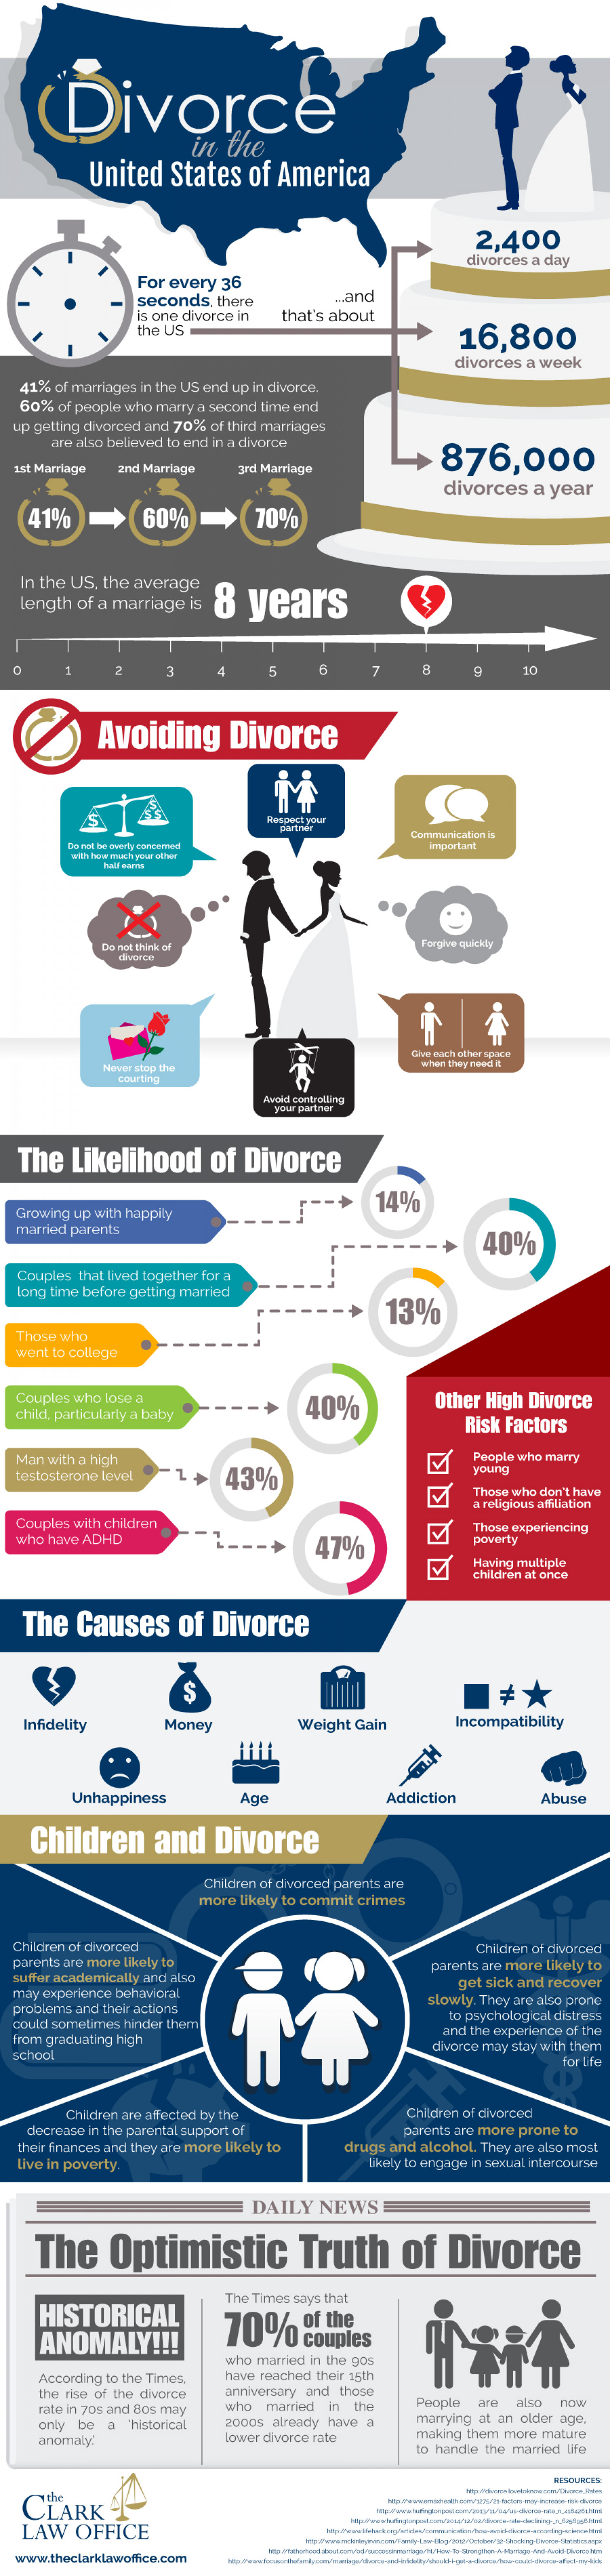 the factors leading to divorce in the united states This page looks at the factors that are seen as causes in individual divorces, not general social causes of an increased divorce rate first, some links to articles, followed by a summary of the challenging nature of this question, and a report from a divorce lawyers' group on what their clients cite as the causes of their divorces, followed by some.